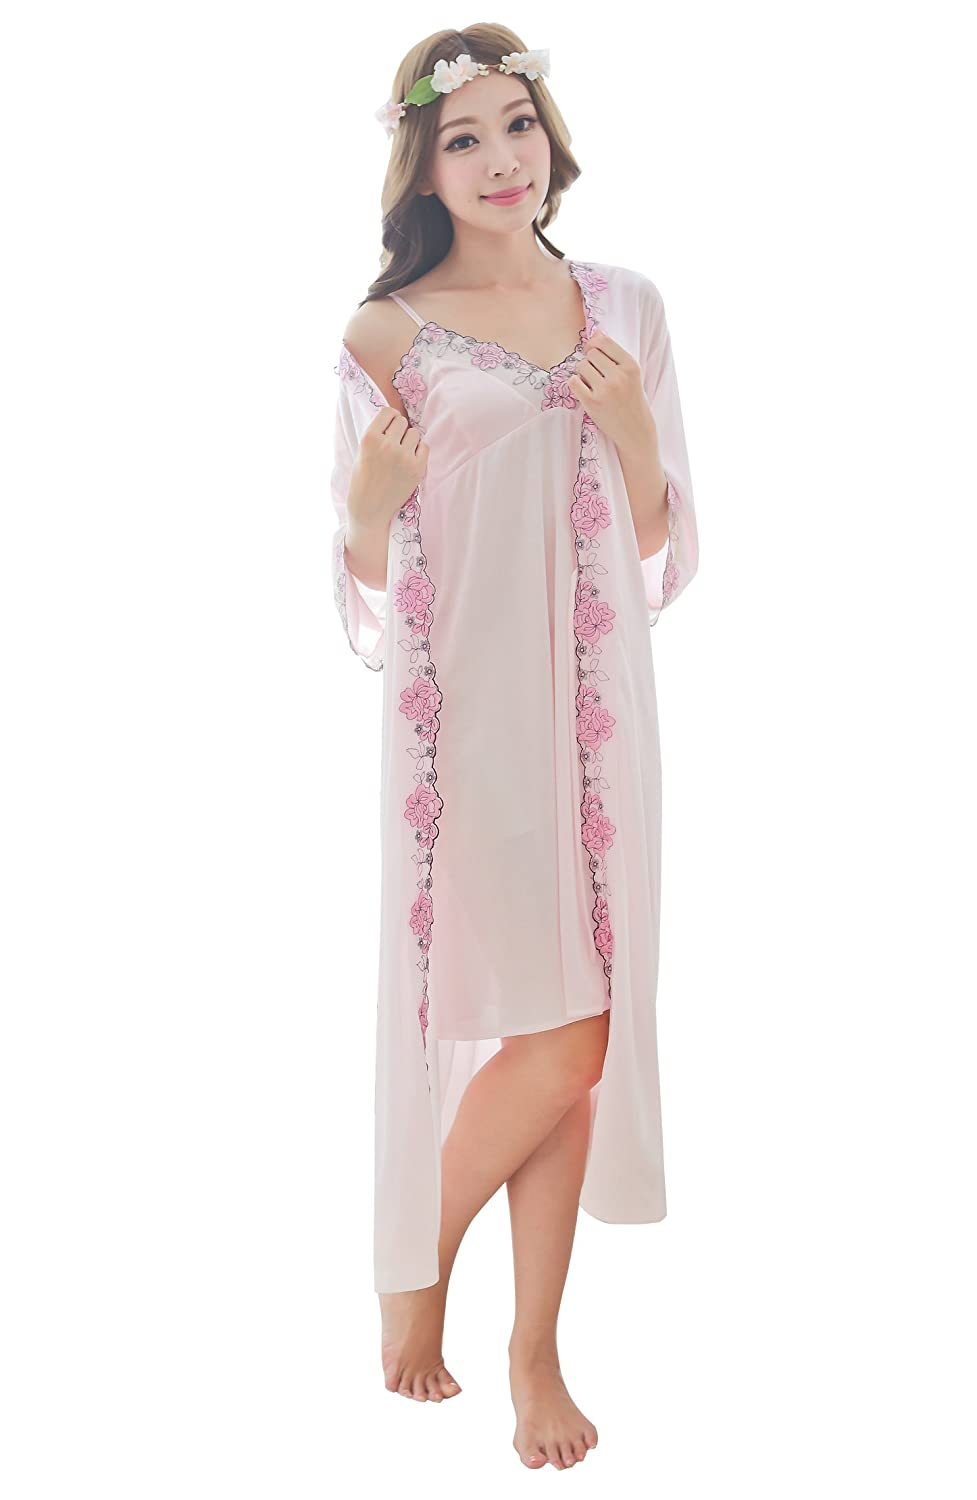 Camellia12 Silk Gorgeous Slip & Robe Set,2PC Long Sleepwear & Floral Lace Trim